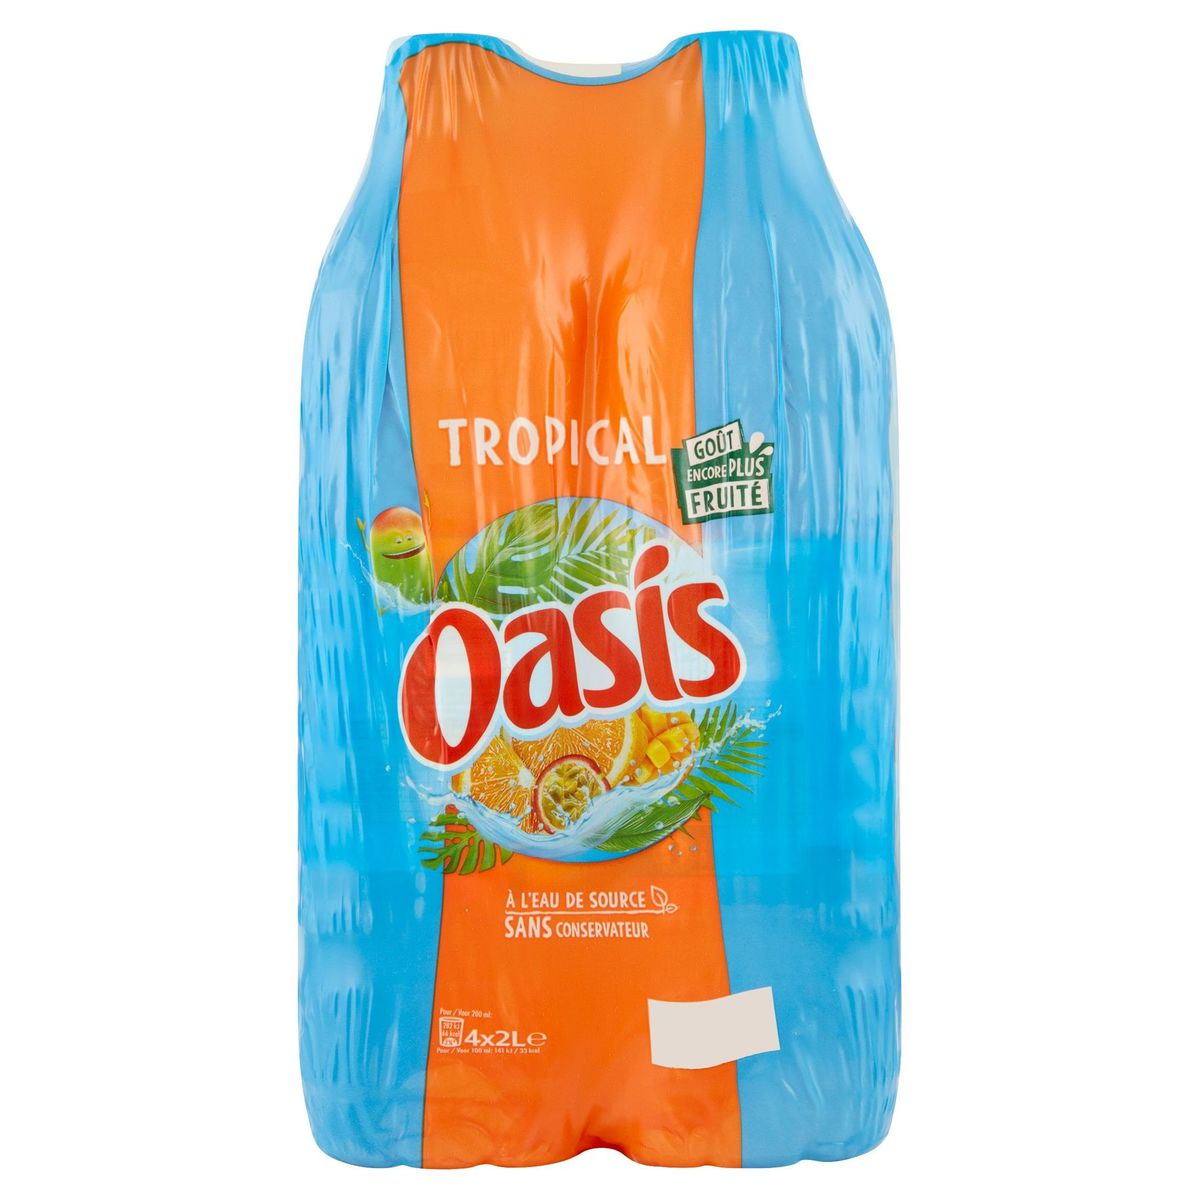 Oasis Tropical Family Pack 4 x 2 L